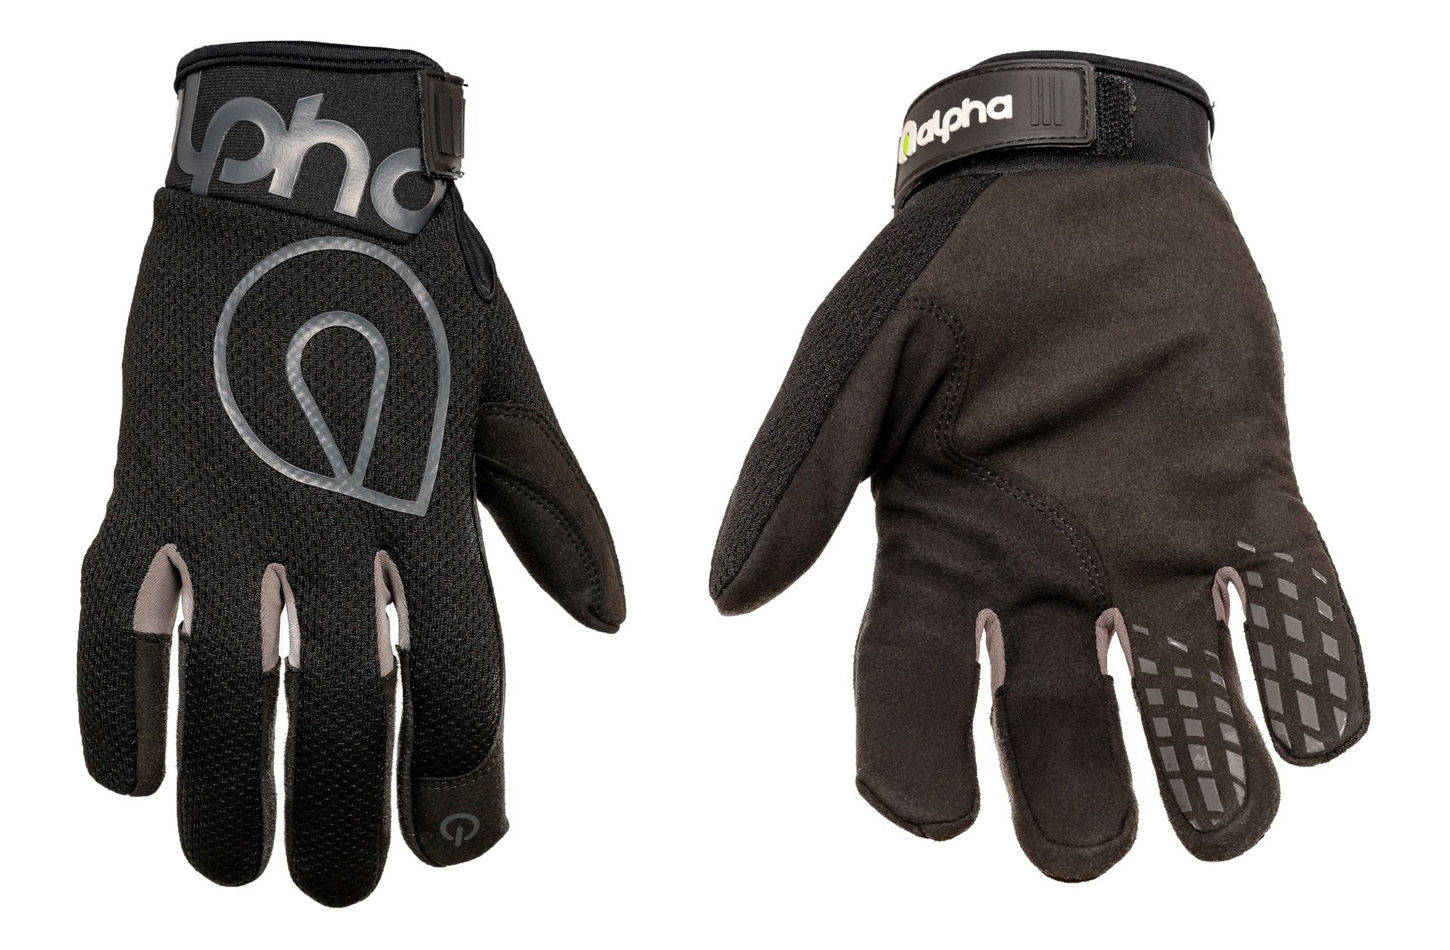 Alpha Gloves AG02-01-XL Gloves, Shop, The Standard, Hook and Loop Closure, Neoprene Cuff, Mesh Top, Touch Screen Capable, Synthetic Leather Palm, Black, X-Large, Pair